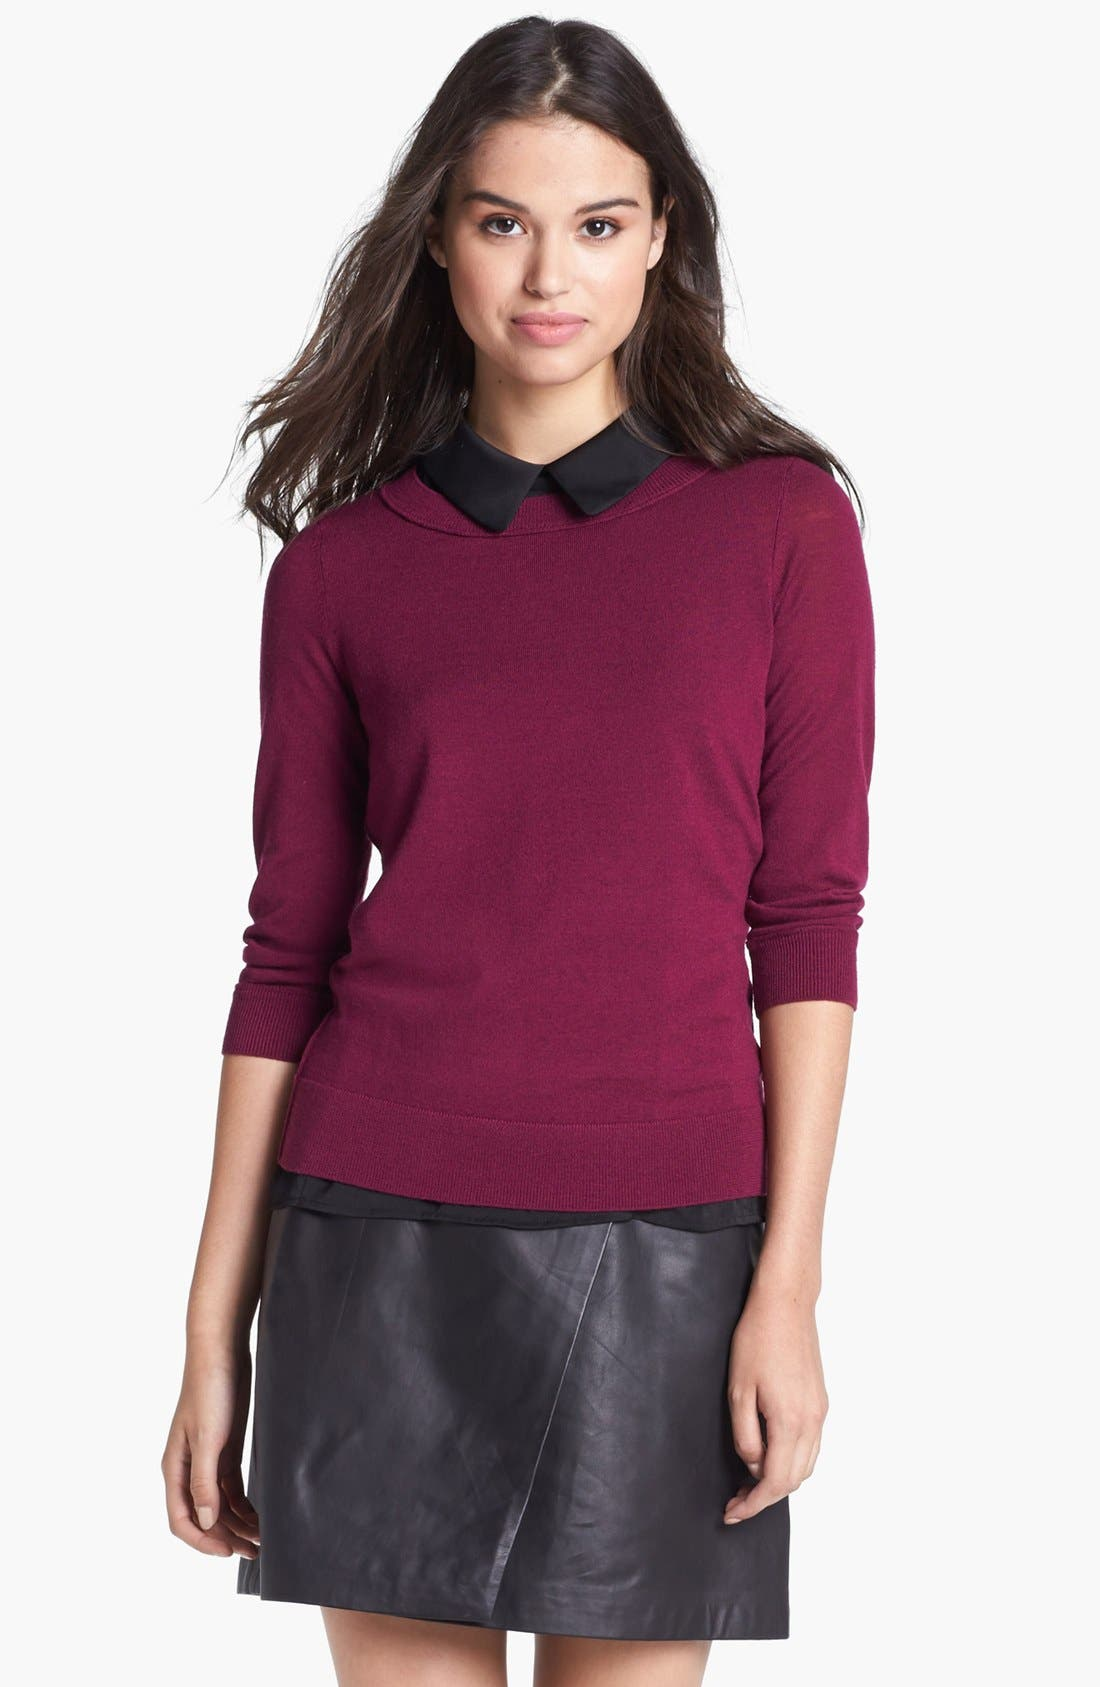 Alternate Image 1 Selected - Halogen® Three Quarter Sleeve Crewneck Sweater